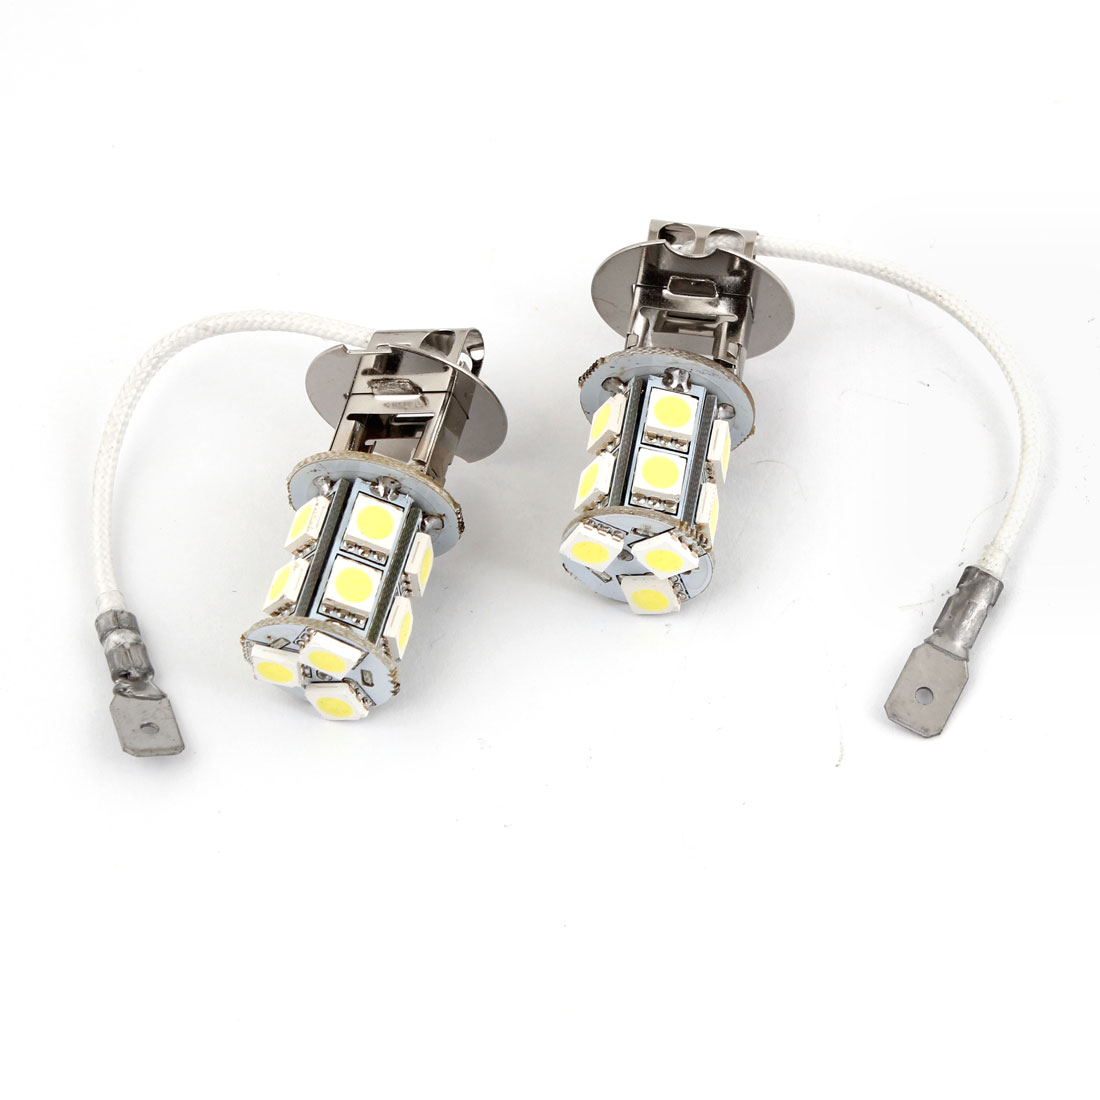 2PCS H3 5050 SMD 13 White LED Car Vehicle Fog Driving Light Lamp DC 12V